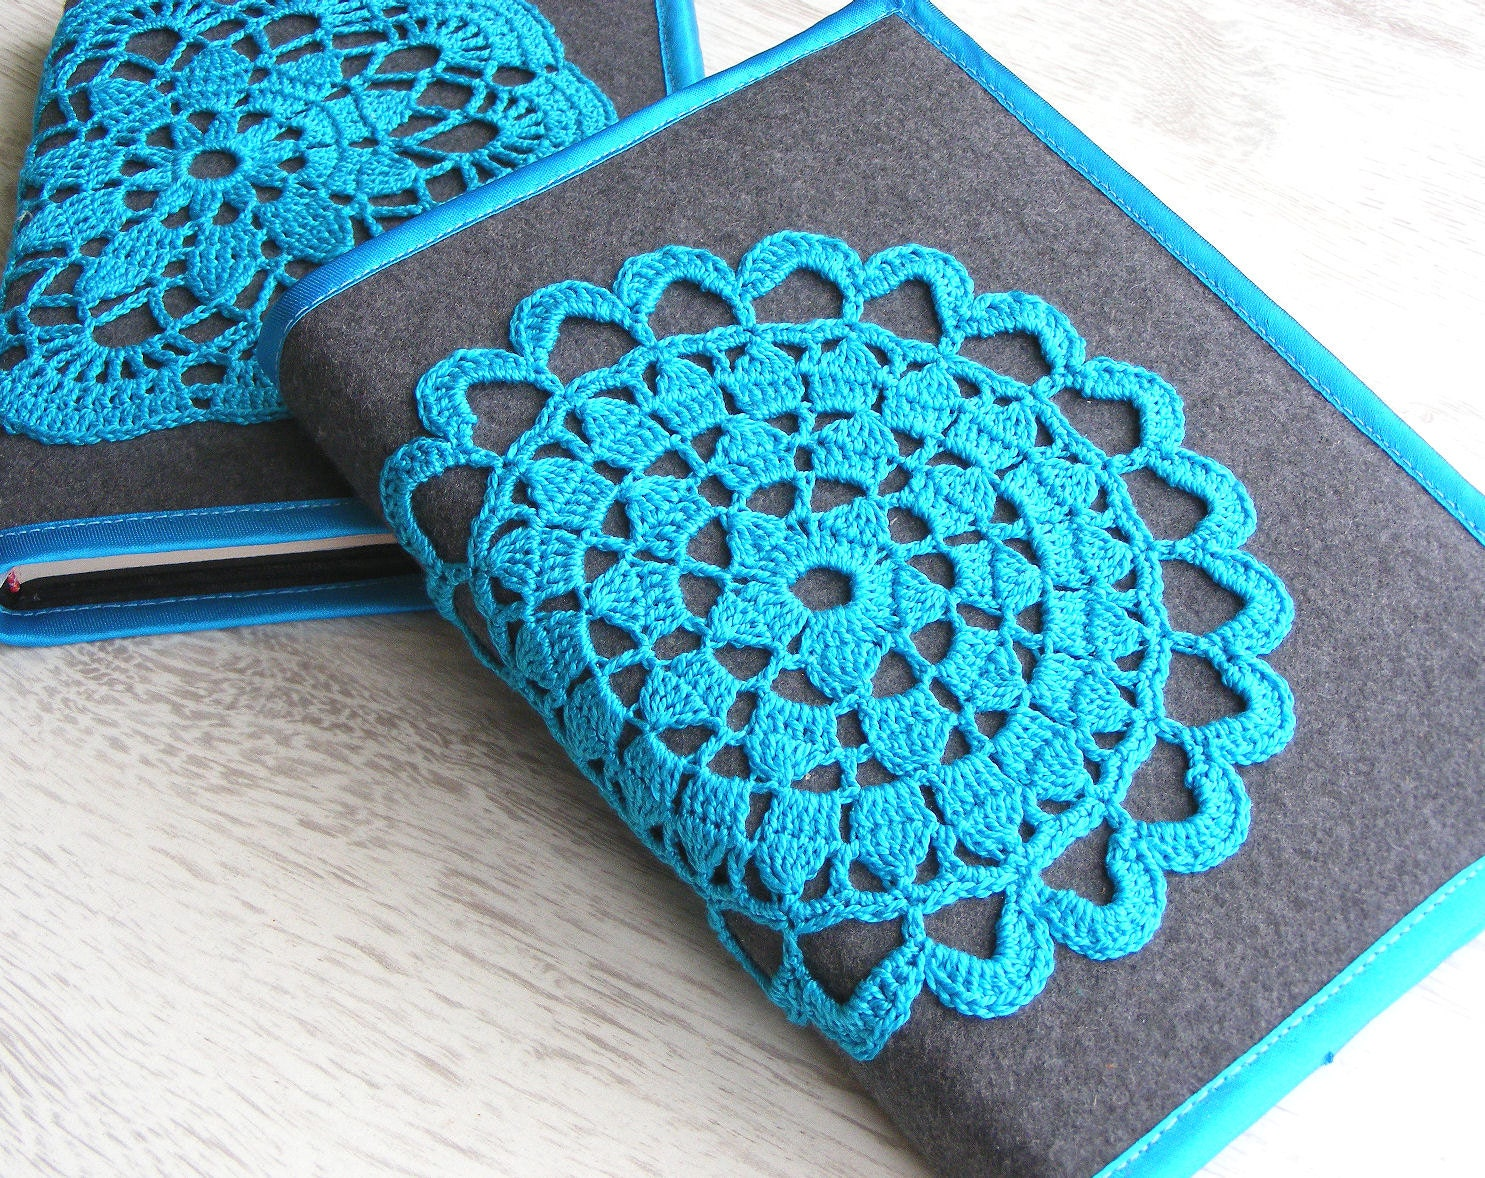 Book Cover Crochet Uk ~ Notebook cover with crochet motif crocheted journal